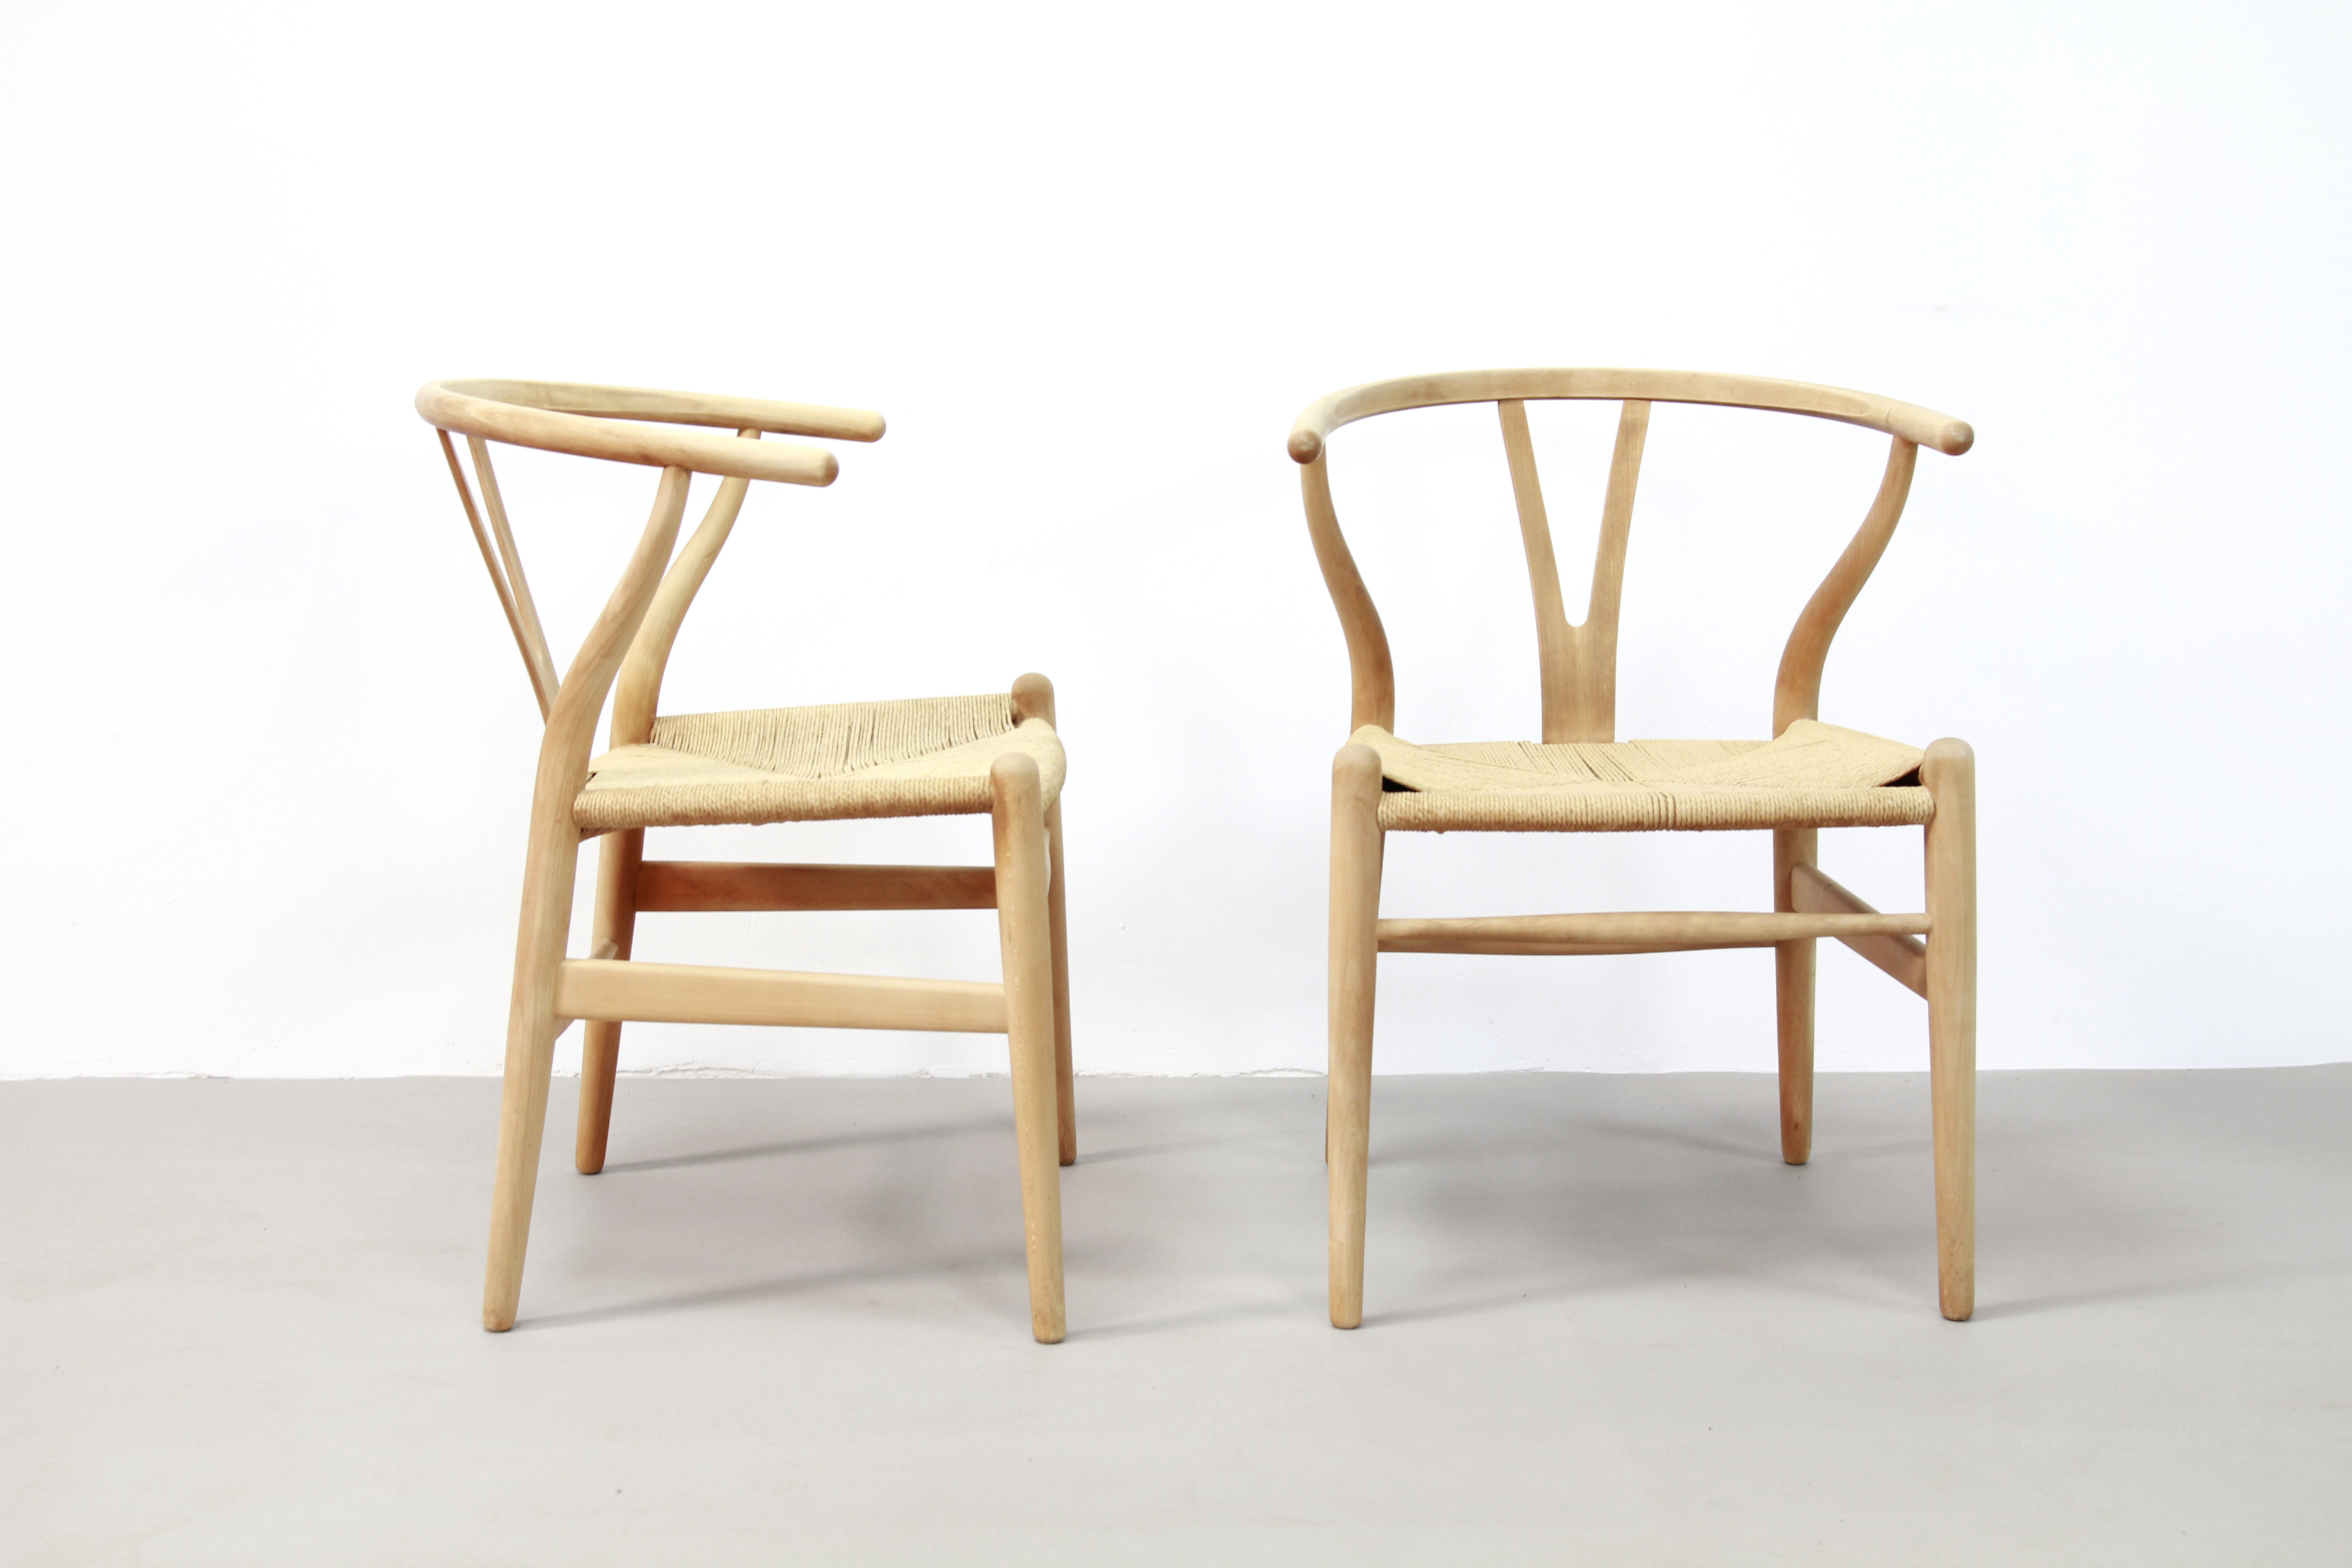 Wishbone Chairs Set Of 4 Hans Wegner Wishbone Chairs By Carl Hansen And Son Model Ch24